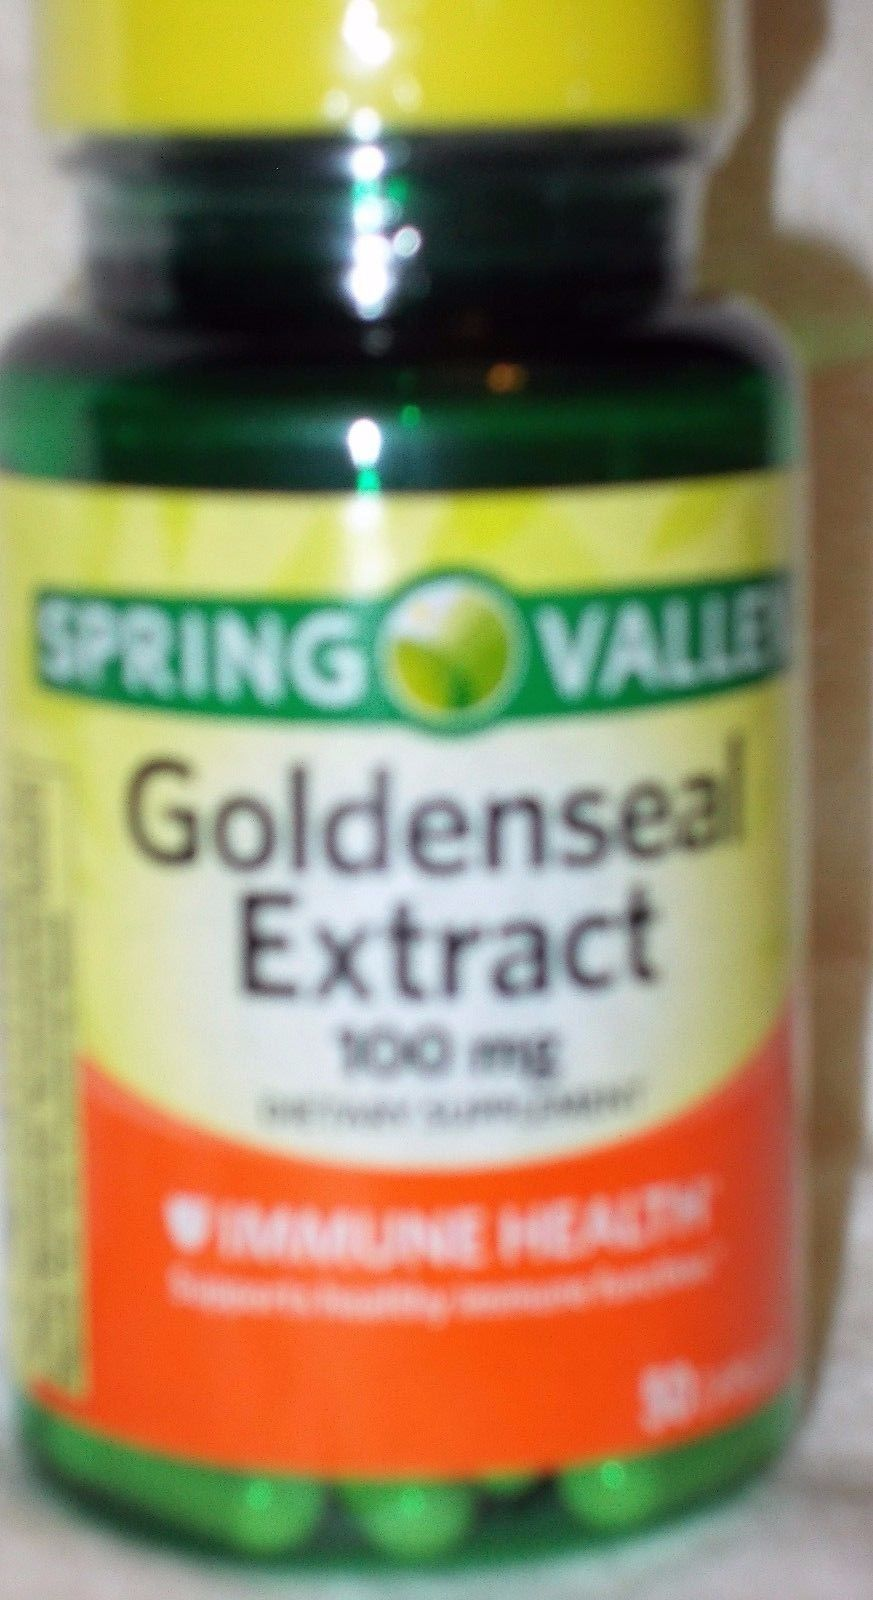 spring valley goldenseal extract 100 mg immune health 50 capsules free shipping